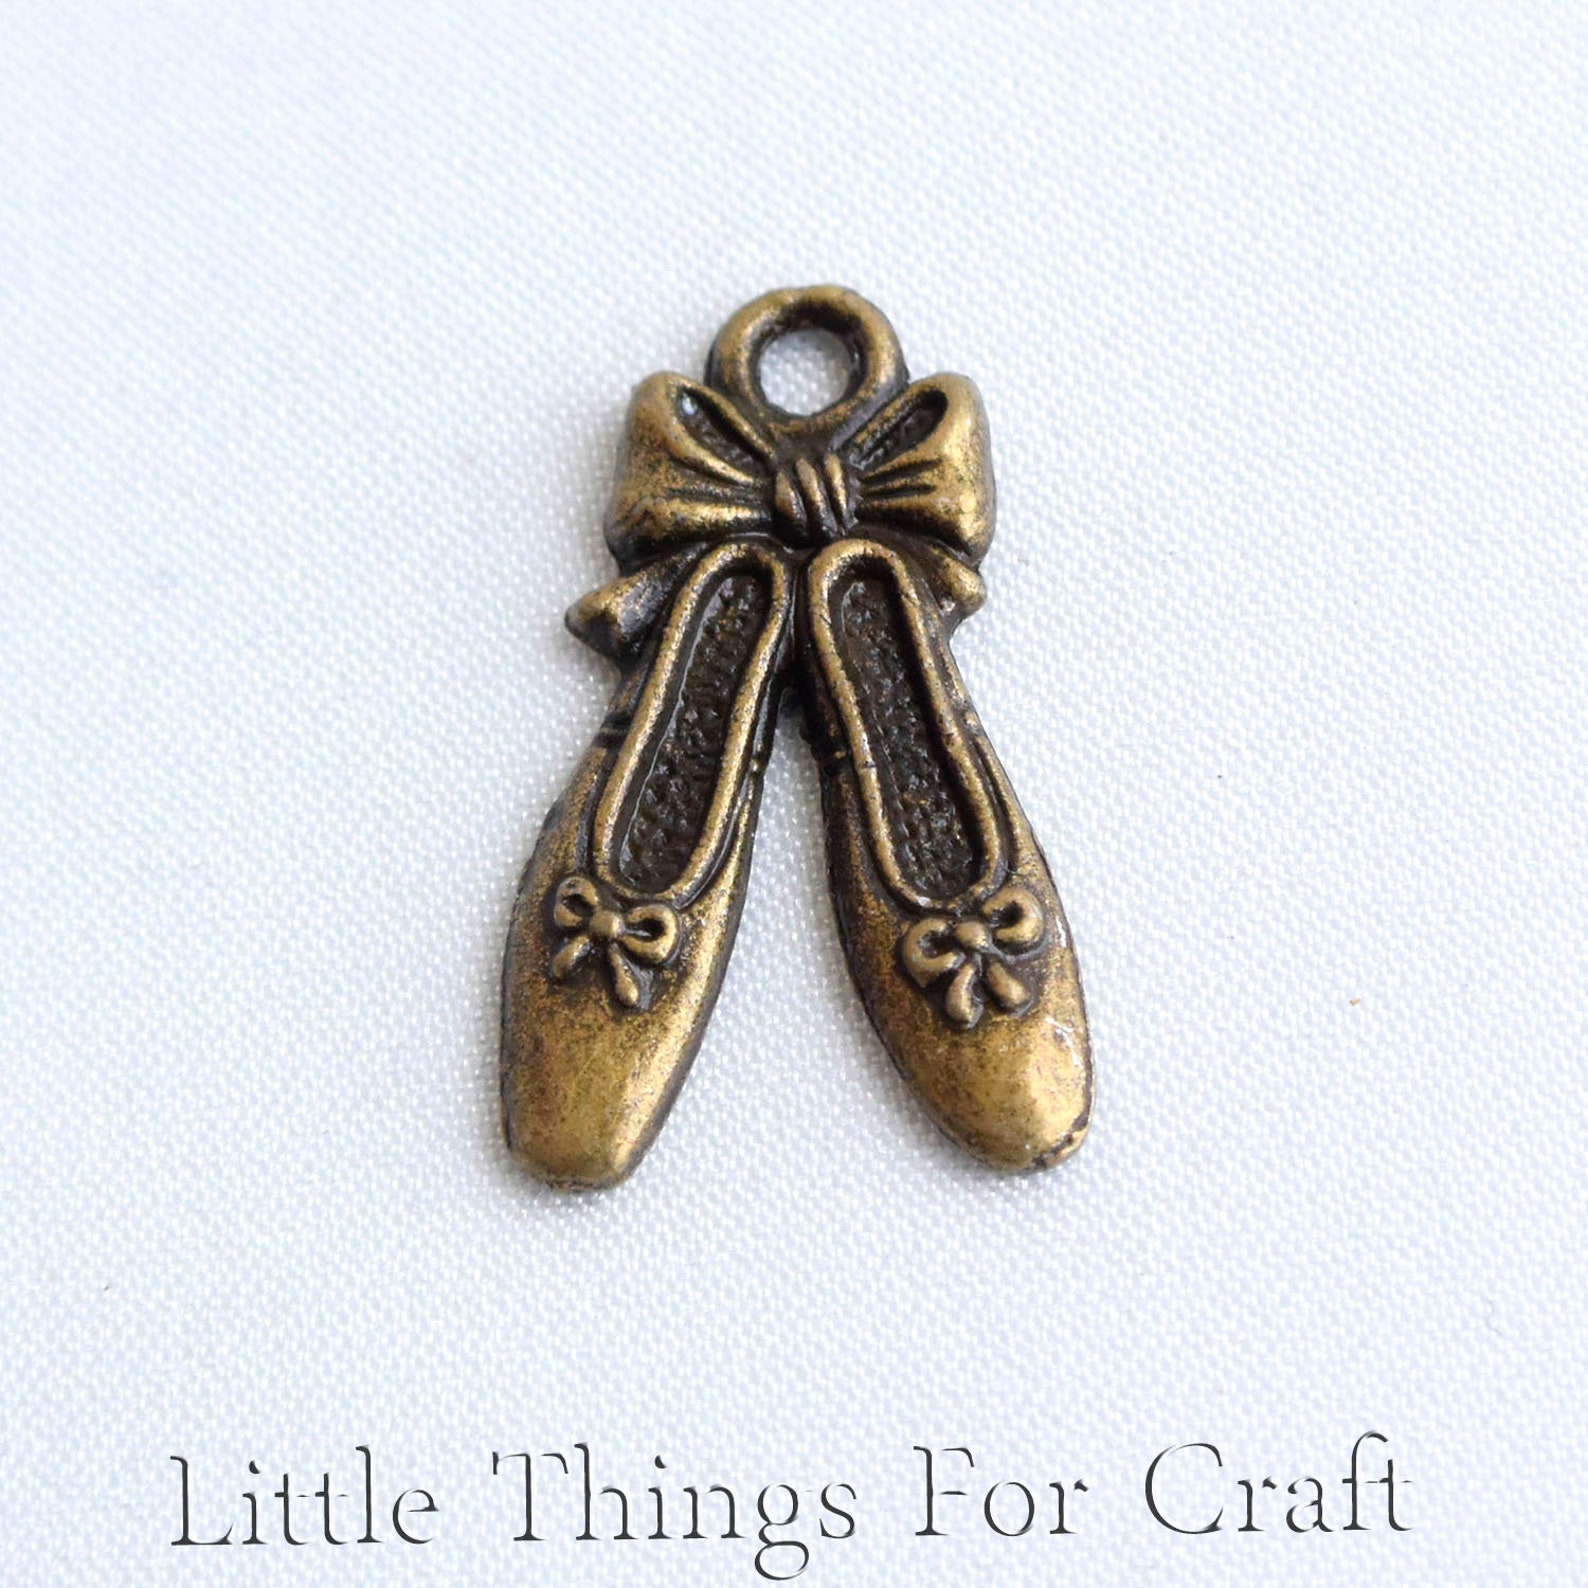 bronze color ballet shoes earrings charms for bracelets in bulk decorative ballerina slippers jewelry charms pendants for neckla